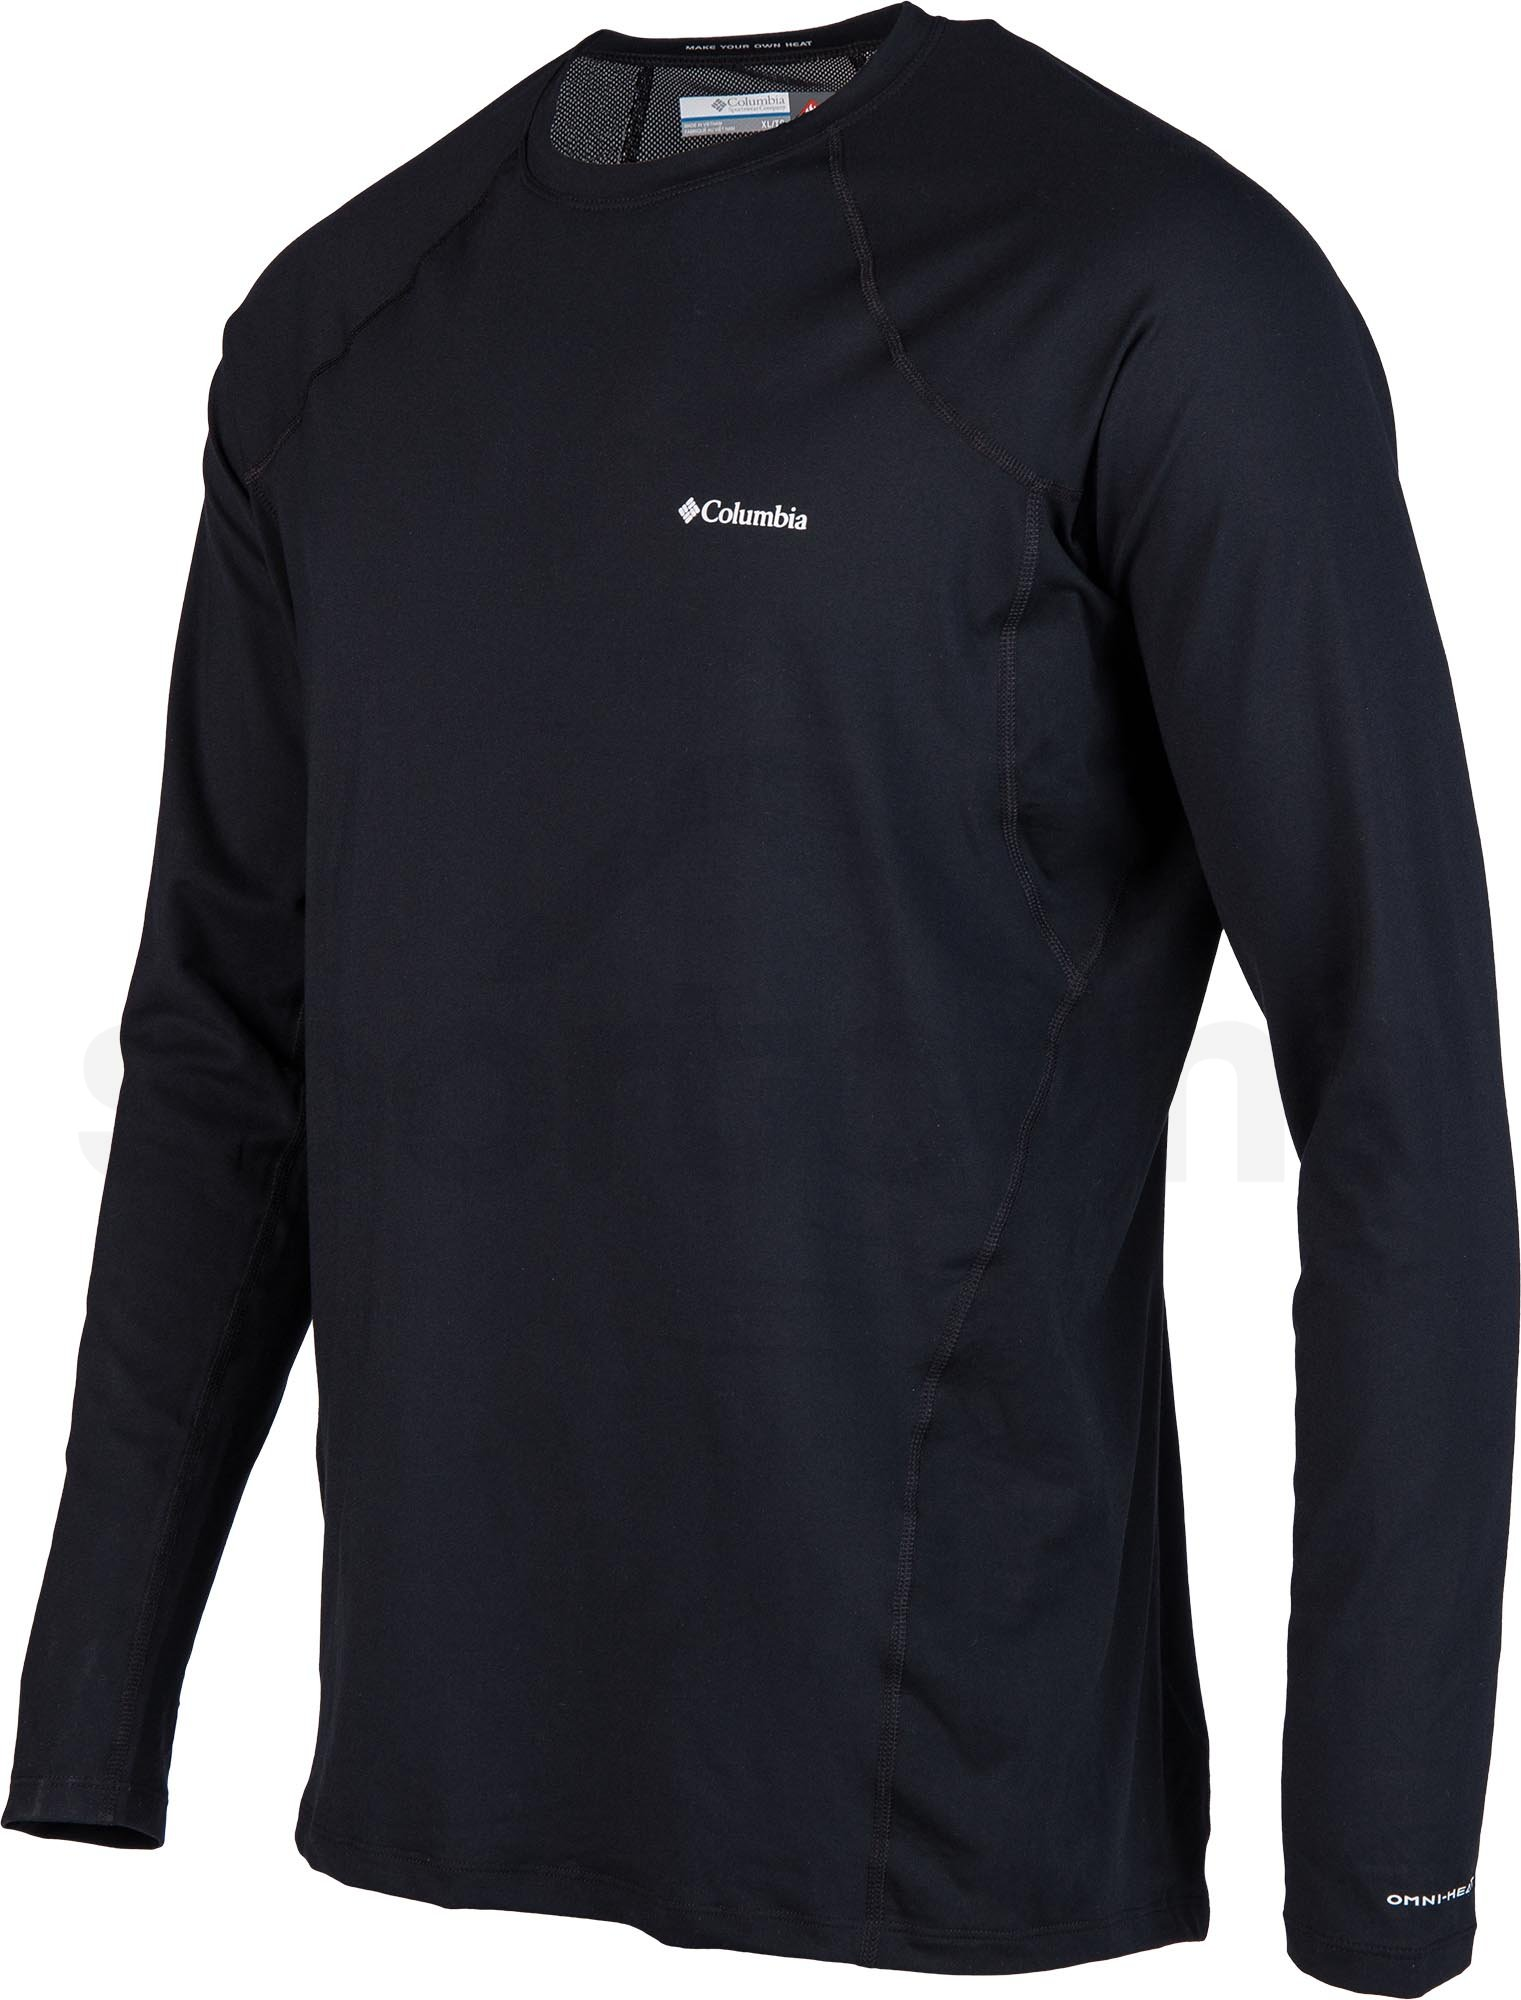 columbia-midweight-ls-top-m_10